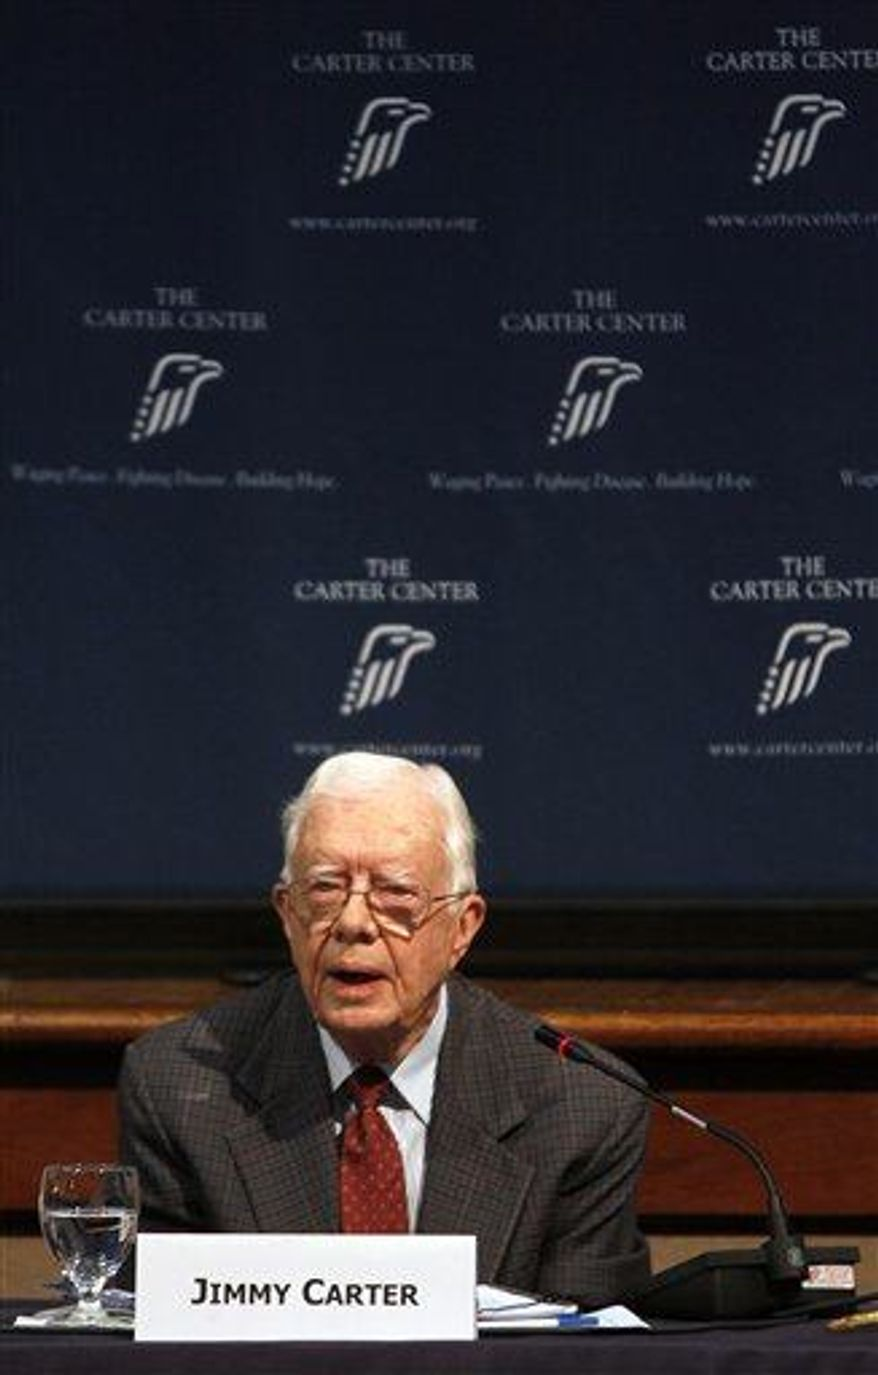 Former President Jimmy Carter presents his opening remarks during a conference on advancing women's rights, at the Carter Center on Friday, June 28, 2013, in Atlanta. (AP Photo/Jaime Henry-White)